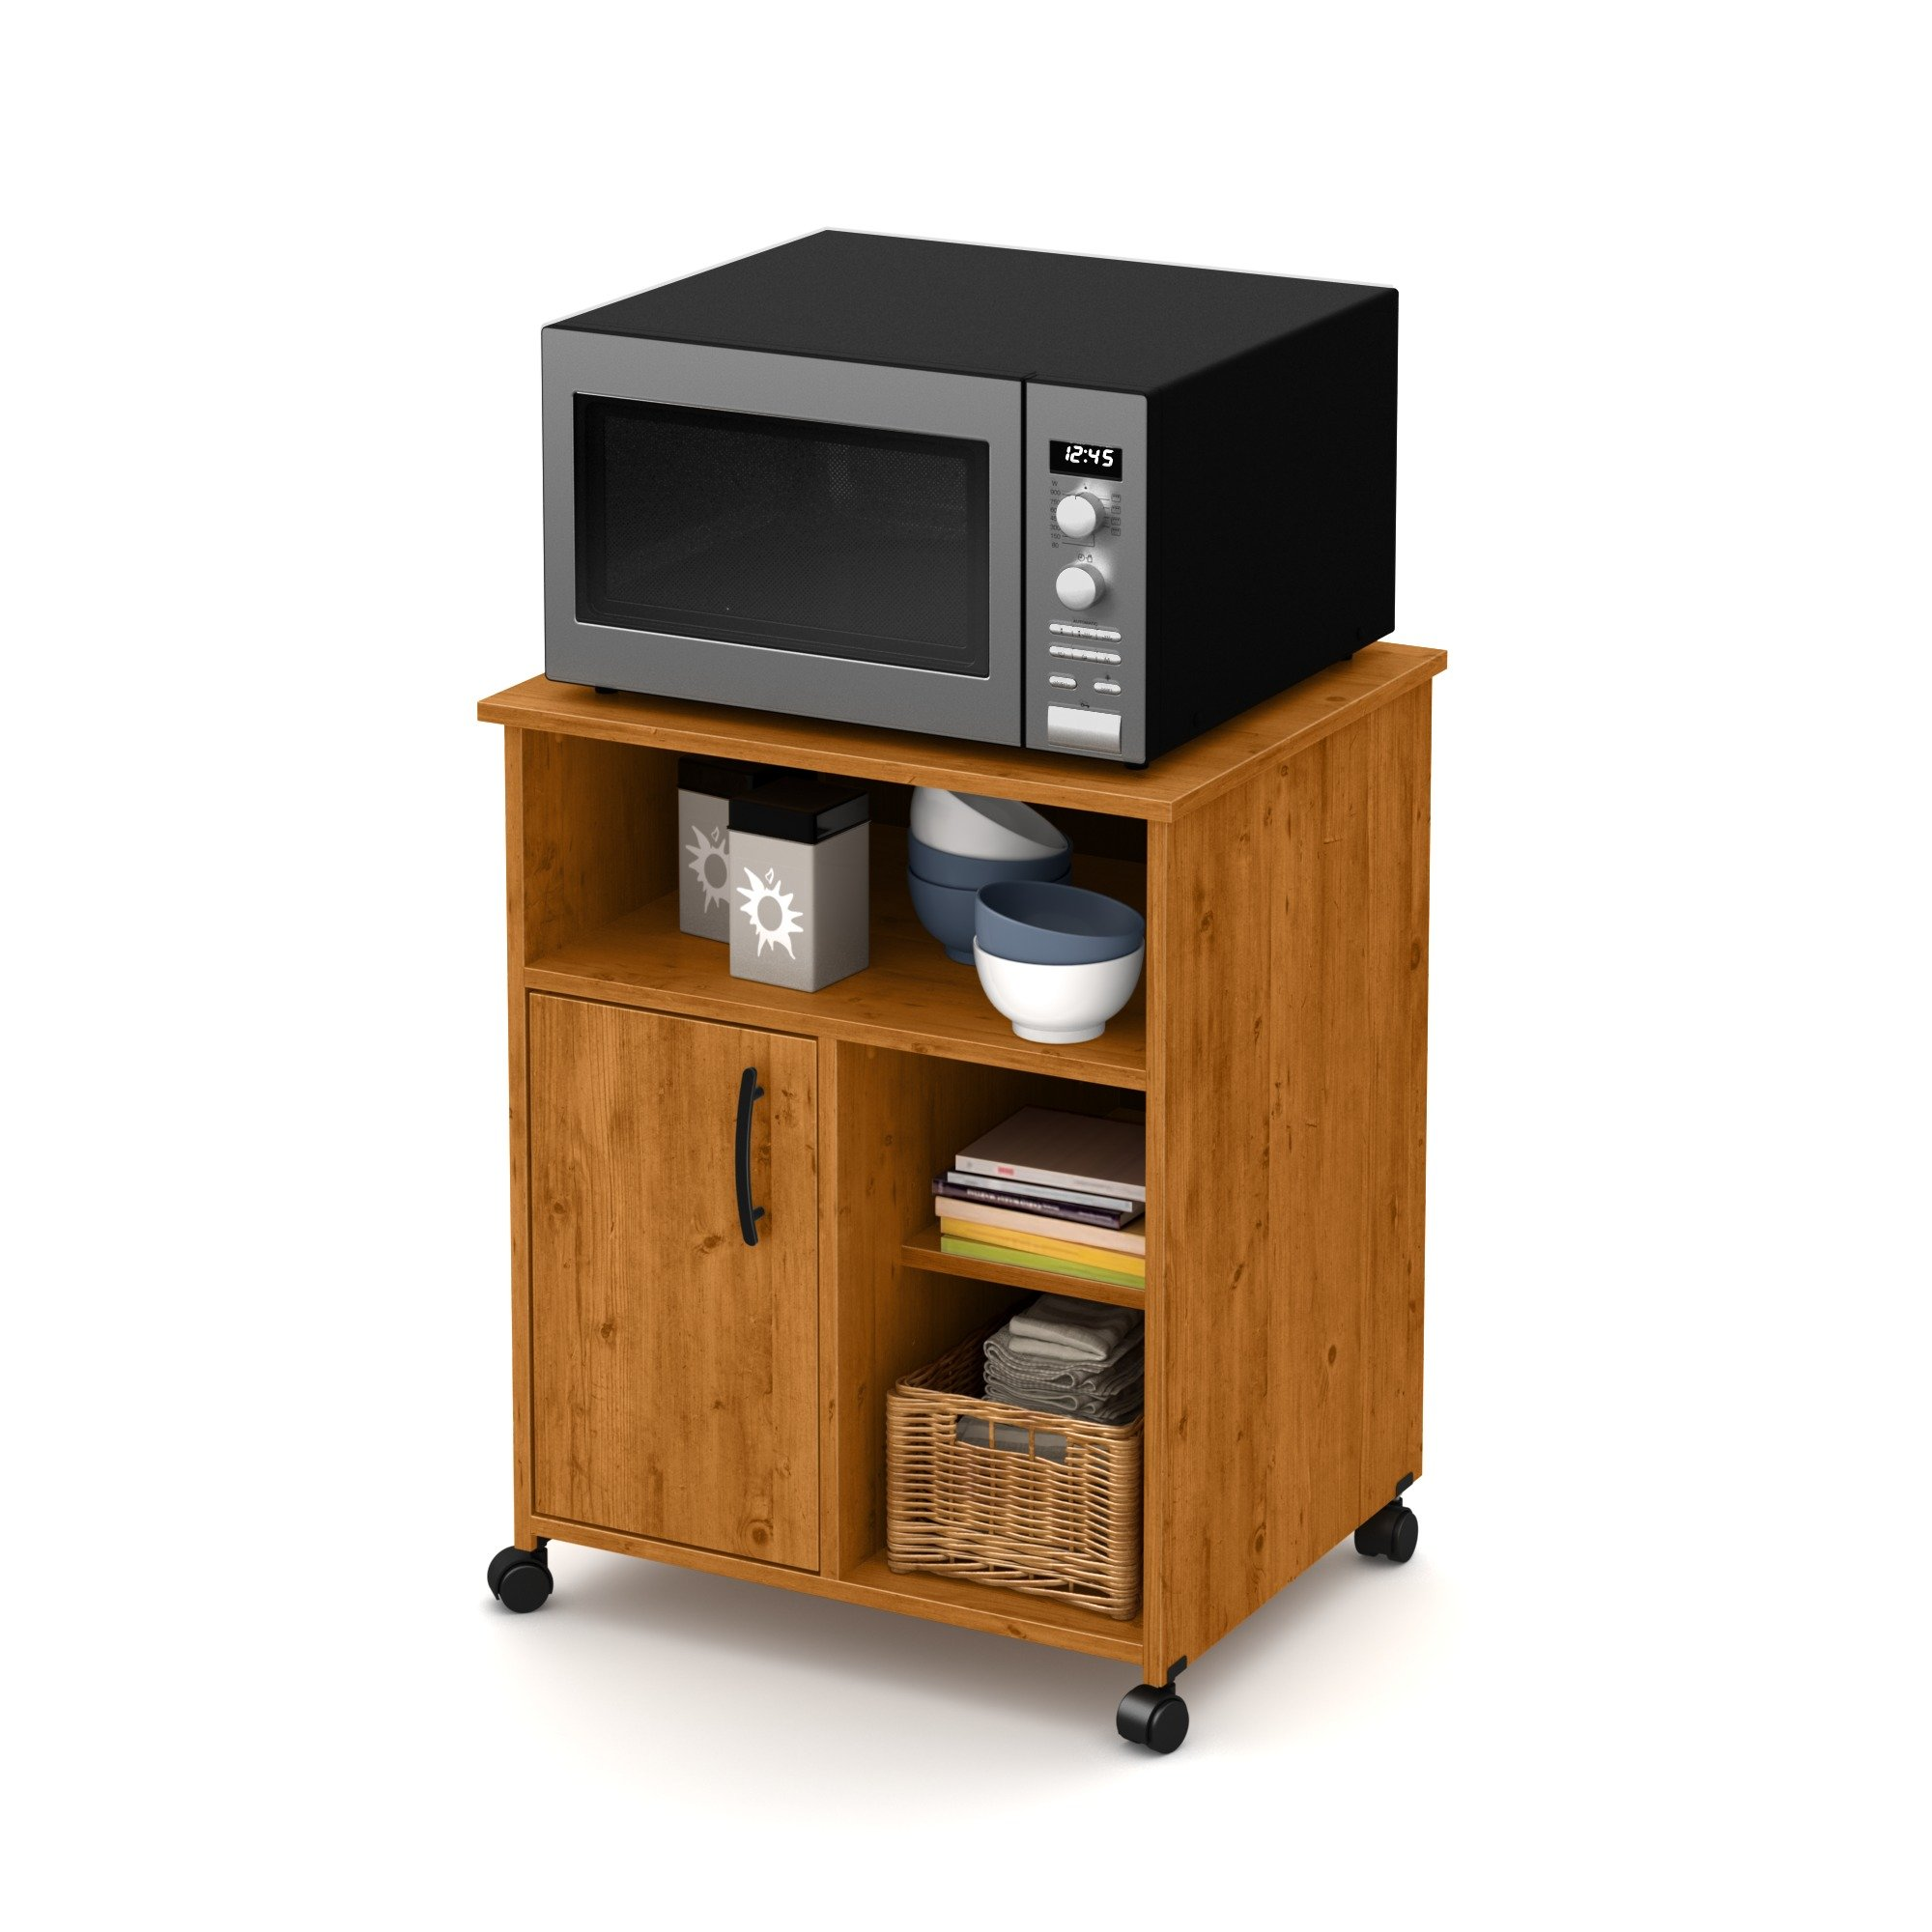 South Shore Axess Microwave Cart with Storage on Wheels, Country Pine by South Shore (Image #7)